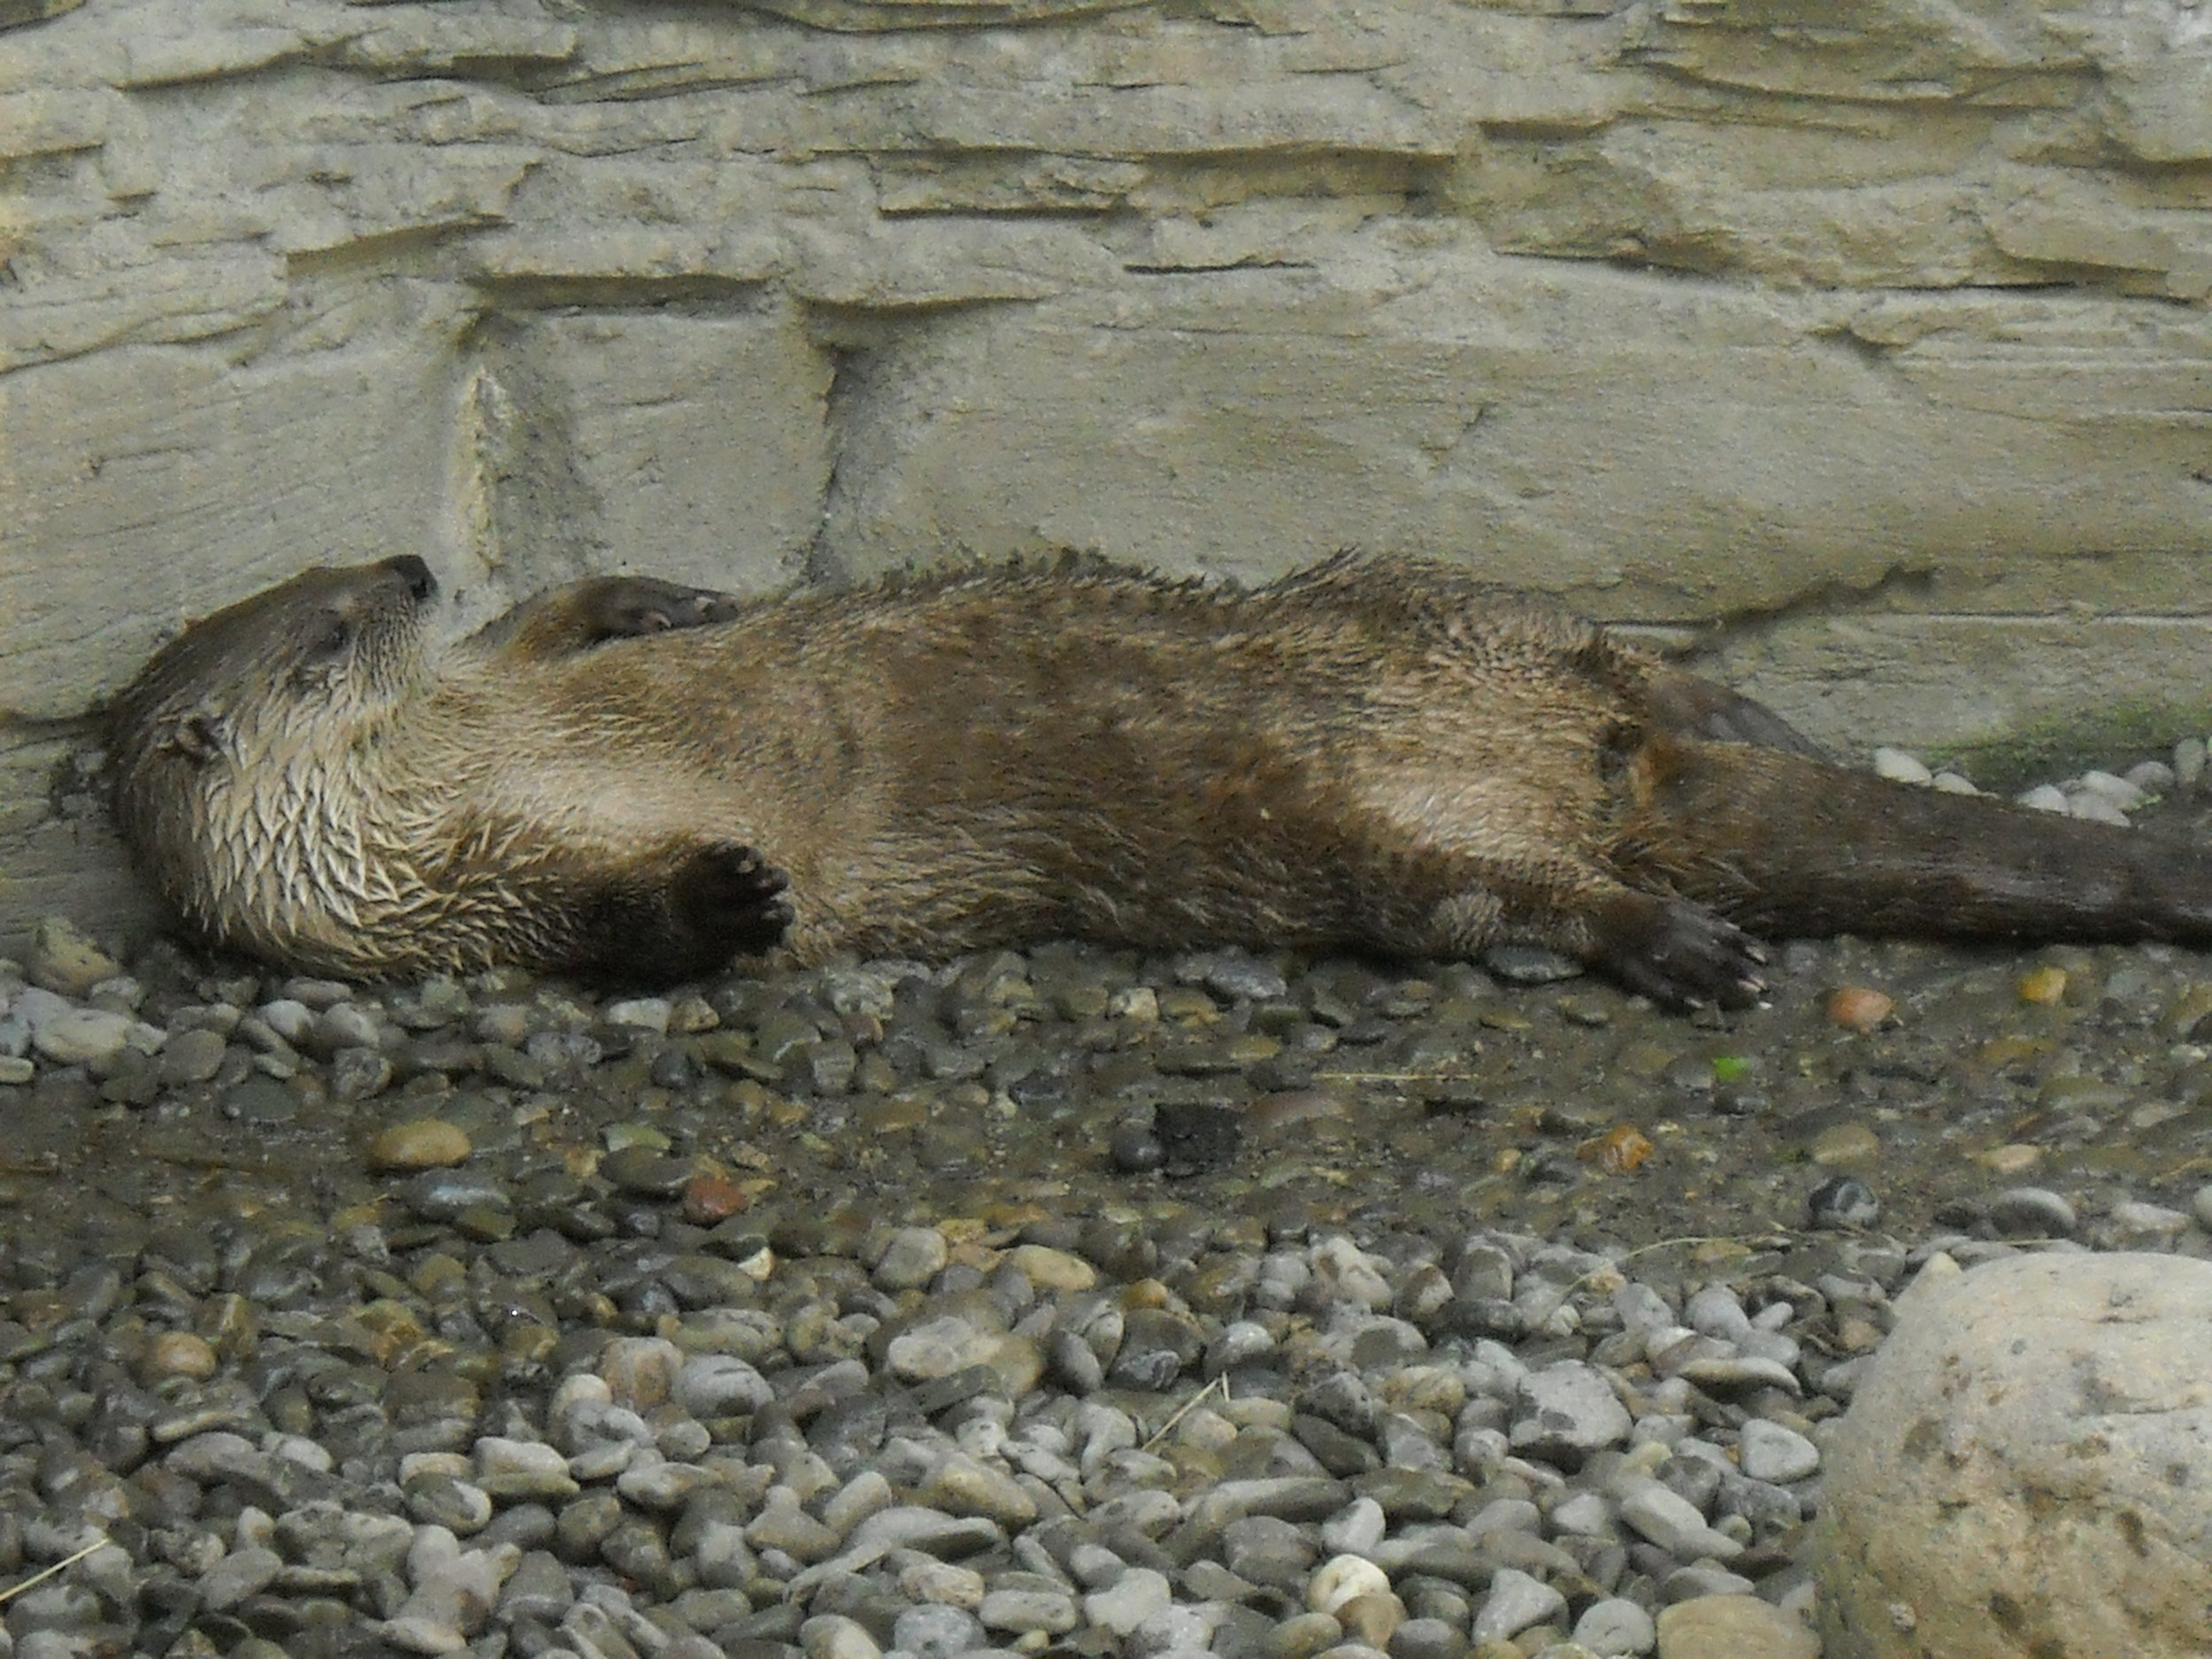 Otter Can Get Comfy on a Bed of Stones 1